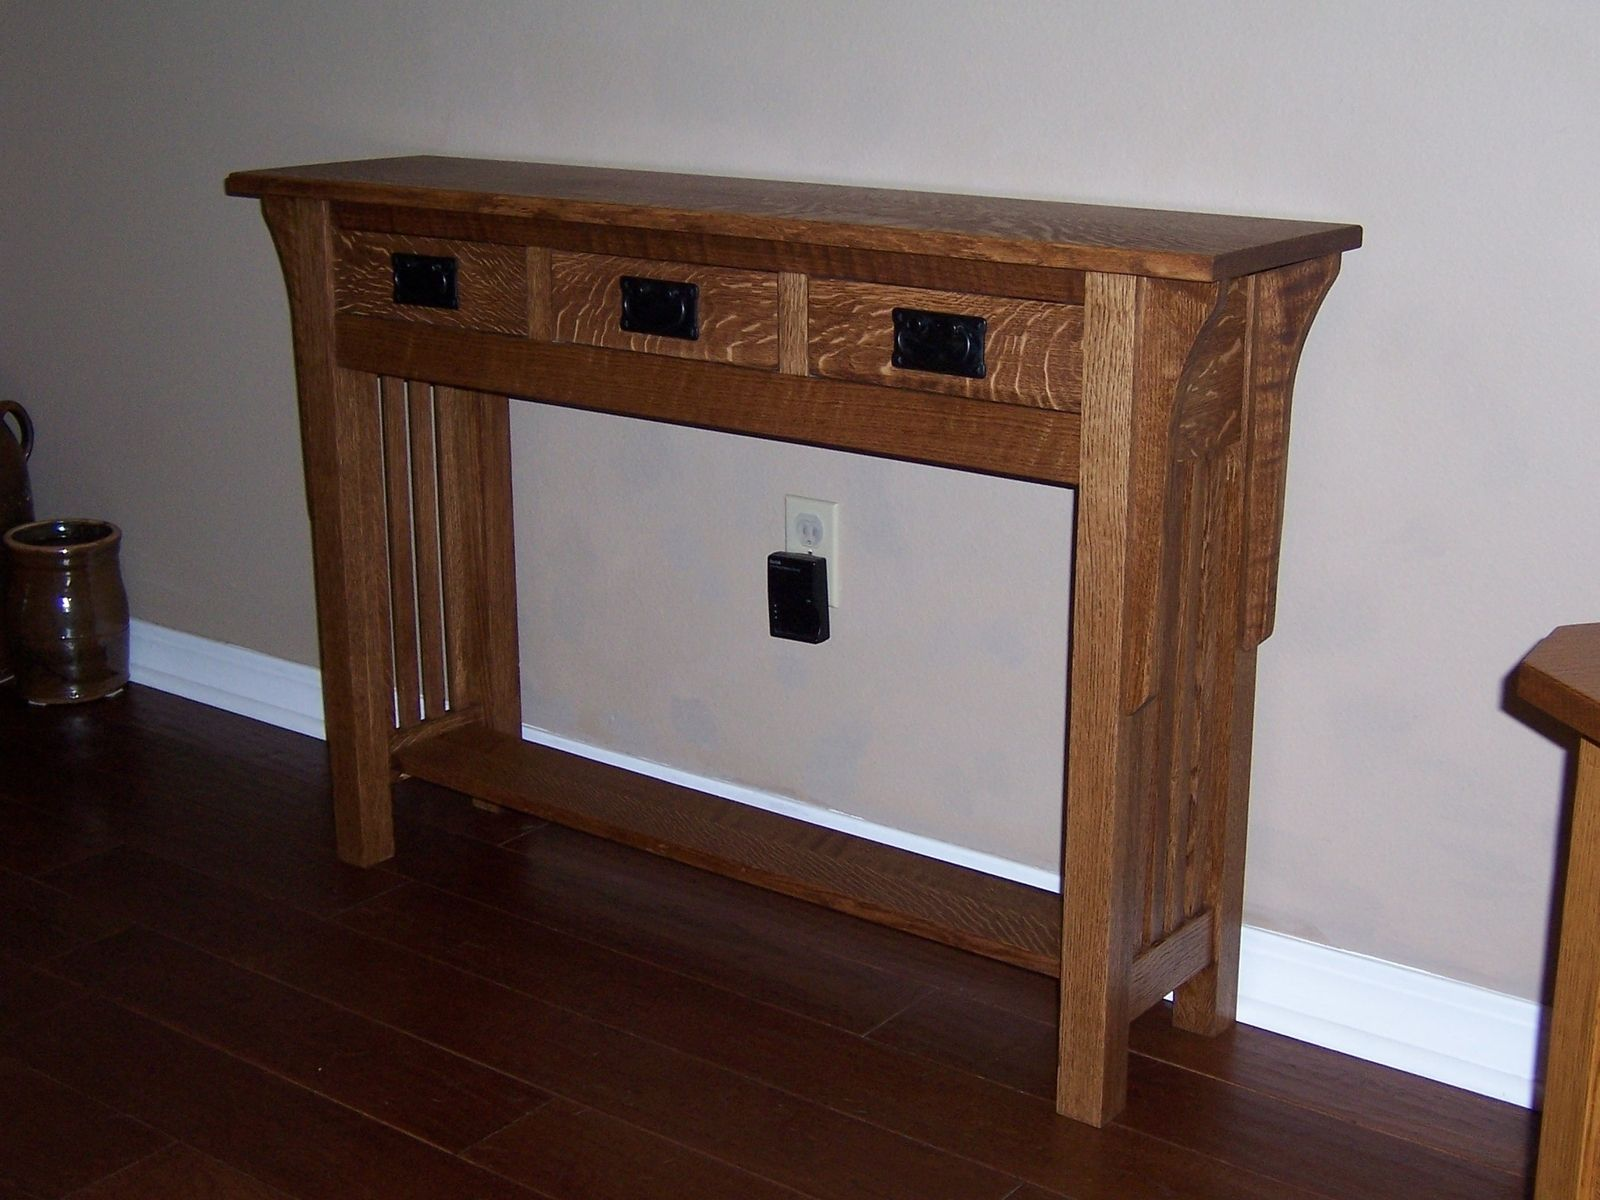 custom made sofa tables how to use click clack bed table by bungalow white oak furniture